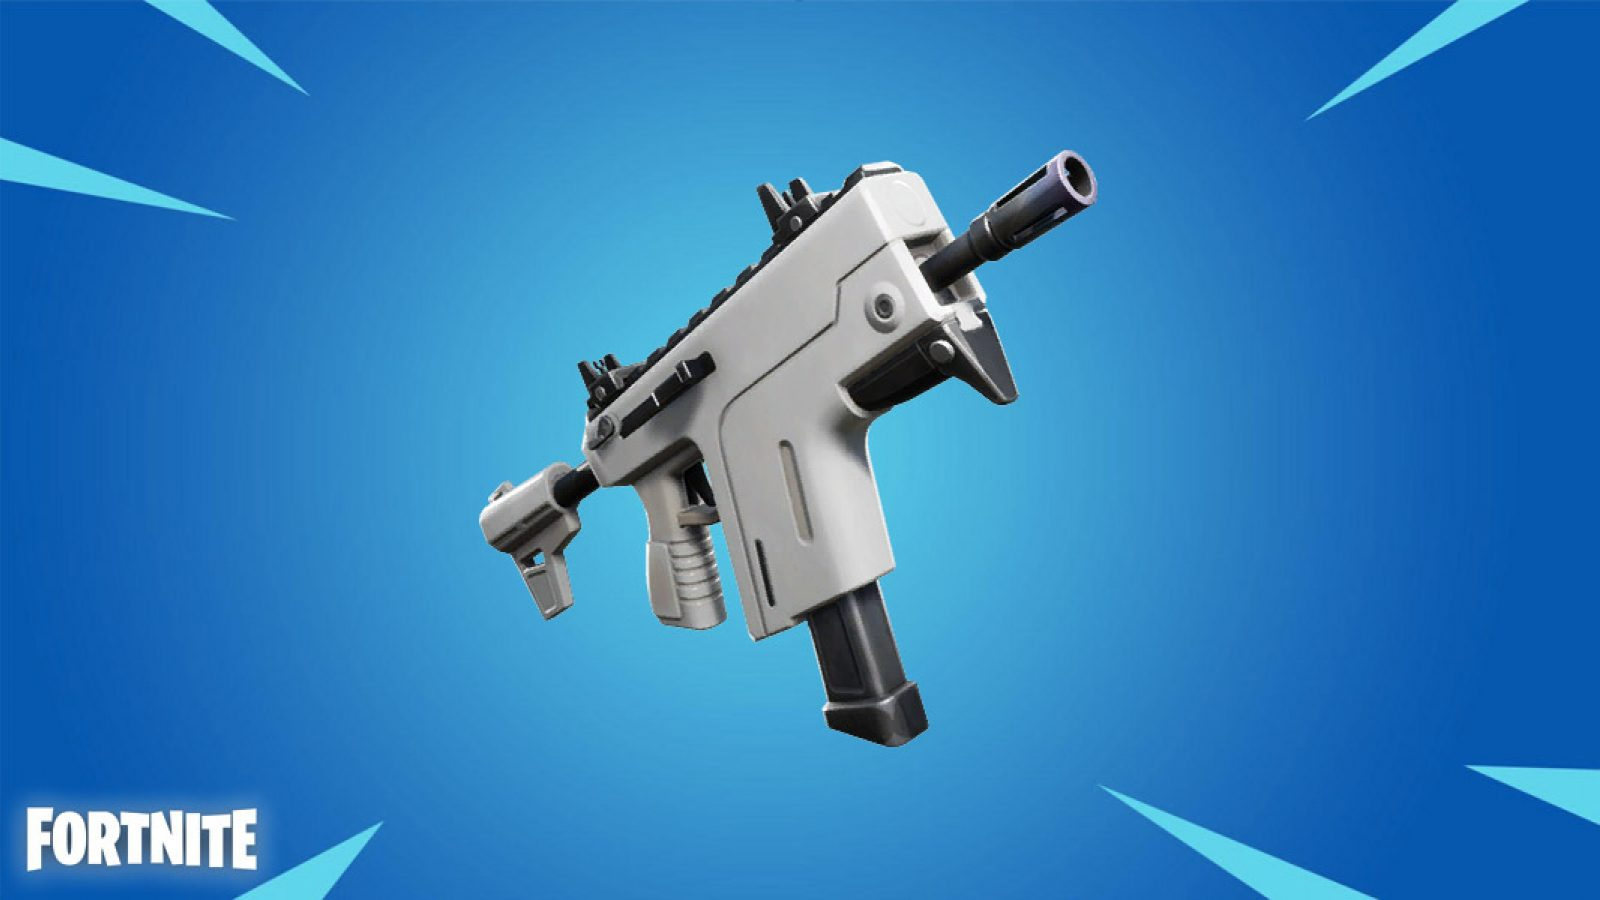 Fortnite- Leaked Stats and Sounds for Leaked Burst SMG Photo